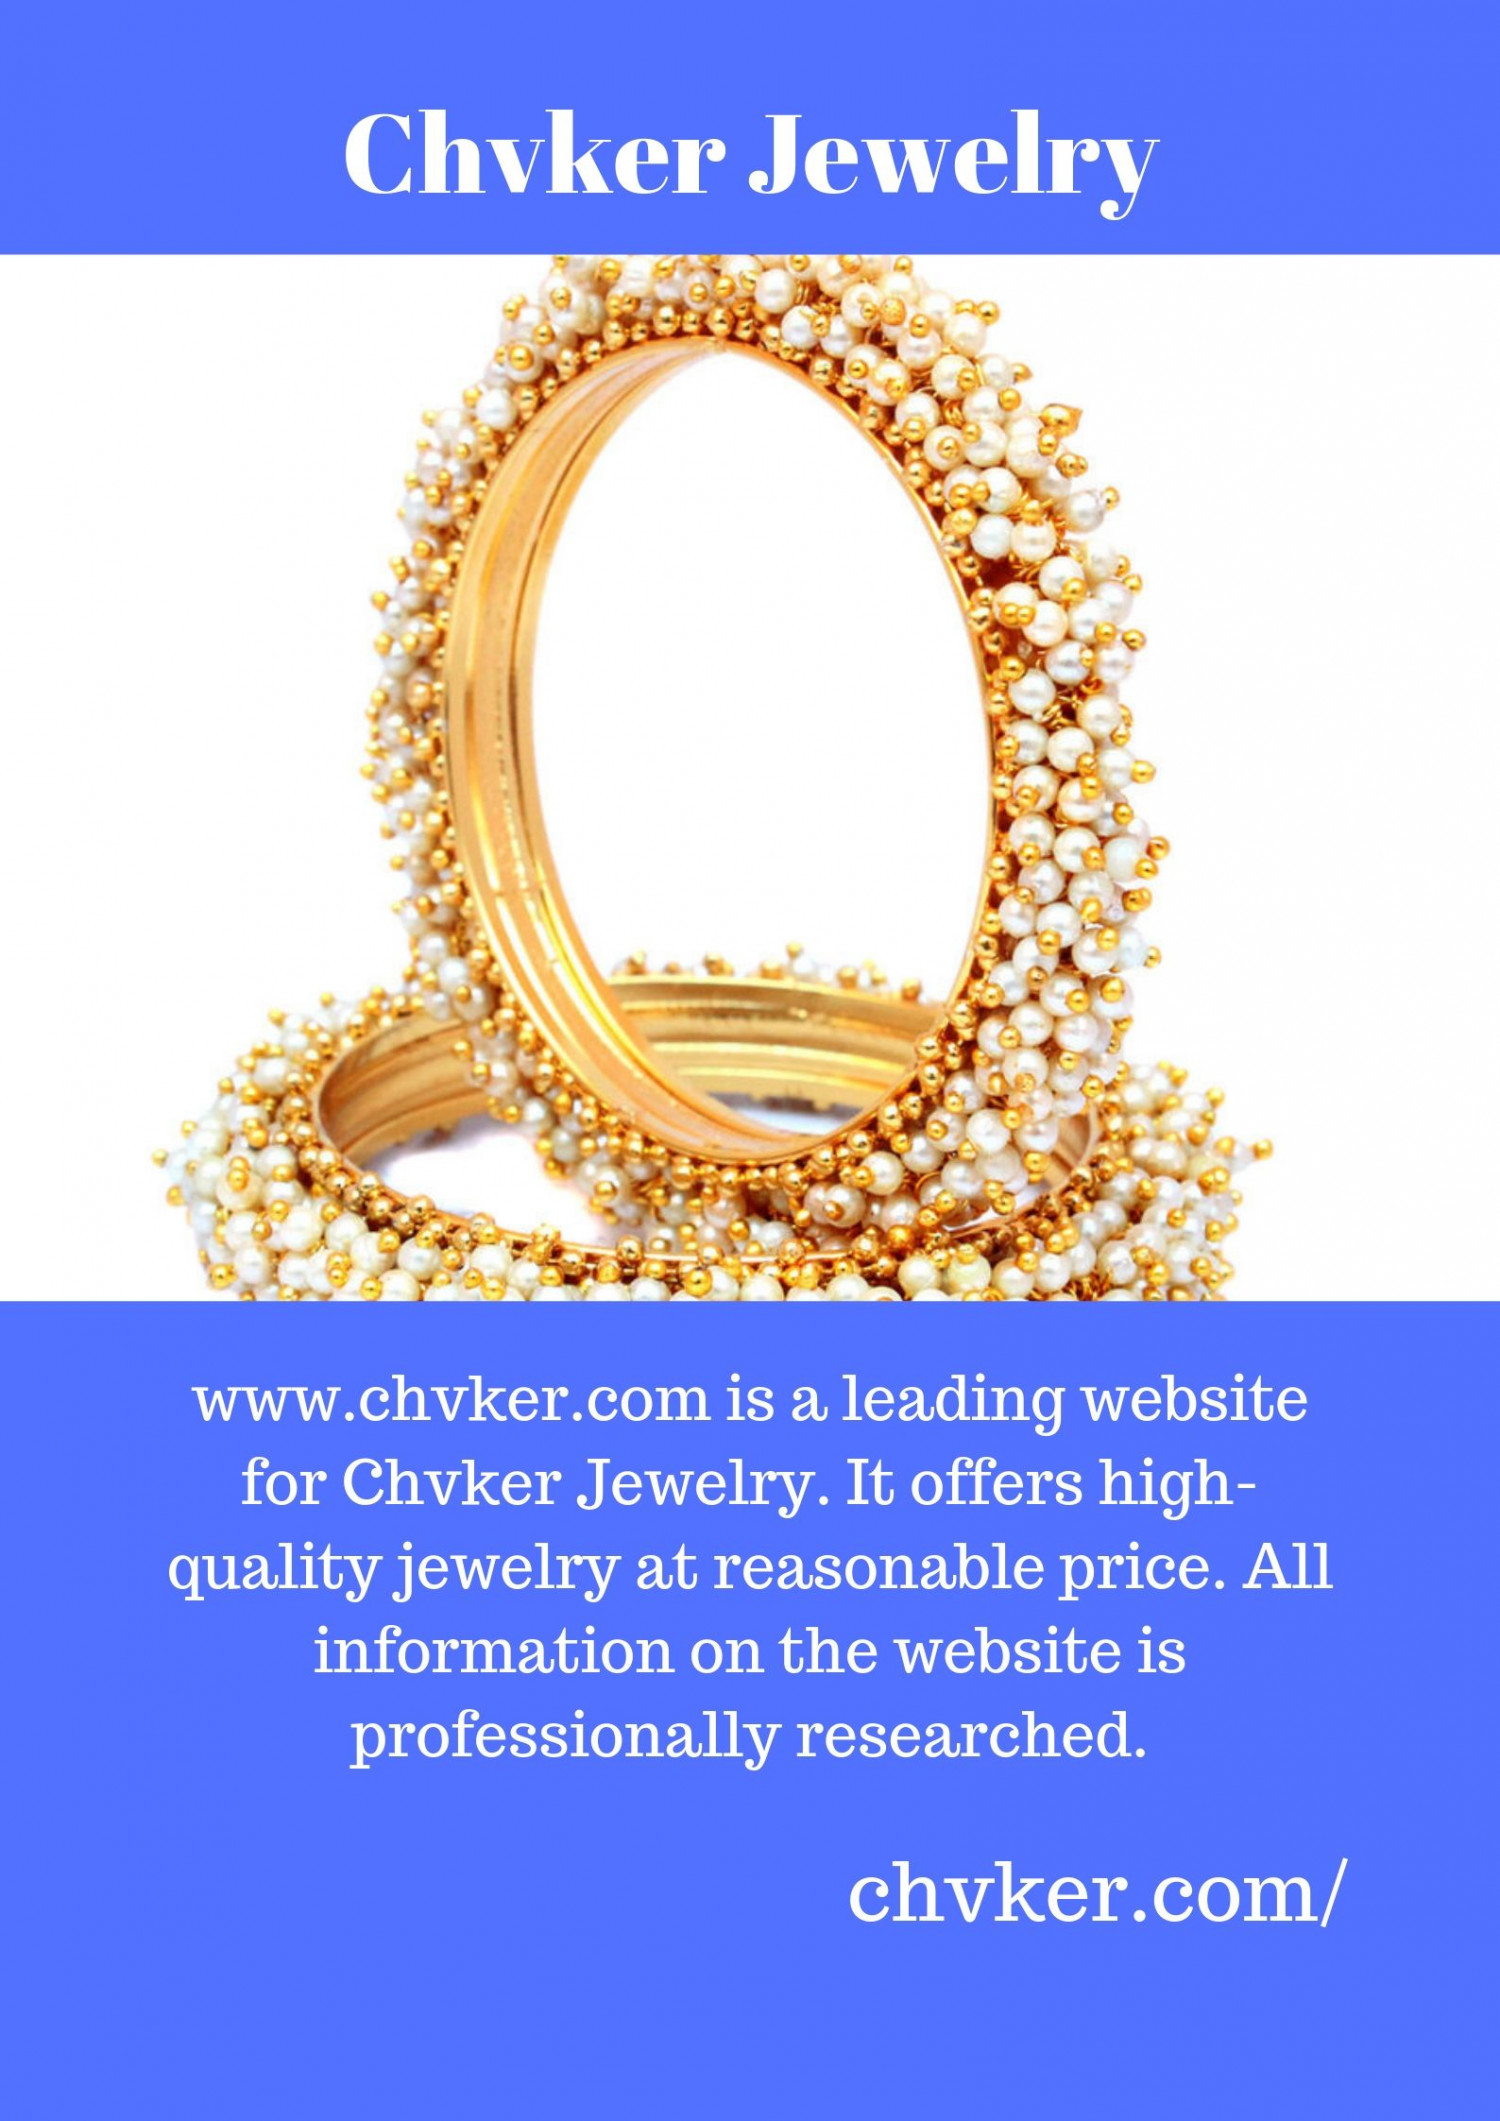 Chvker Jewelry Infographic